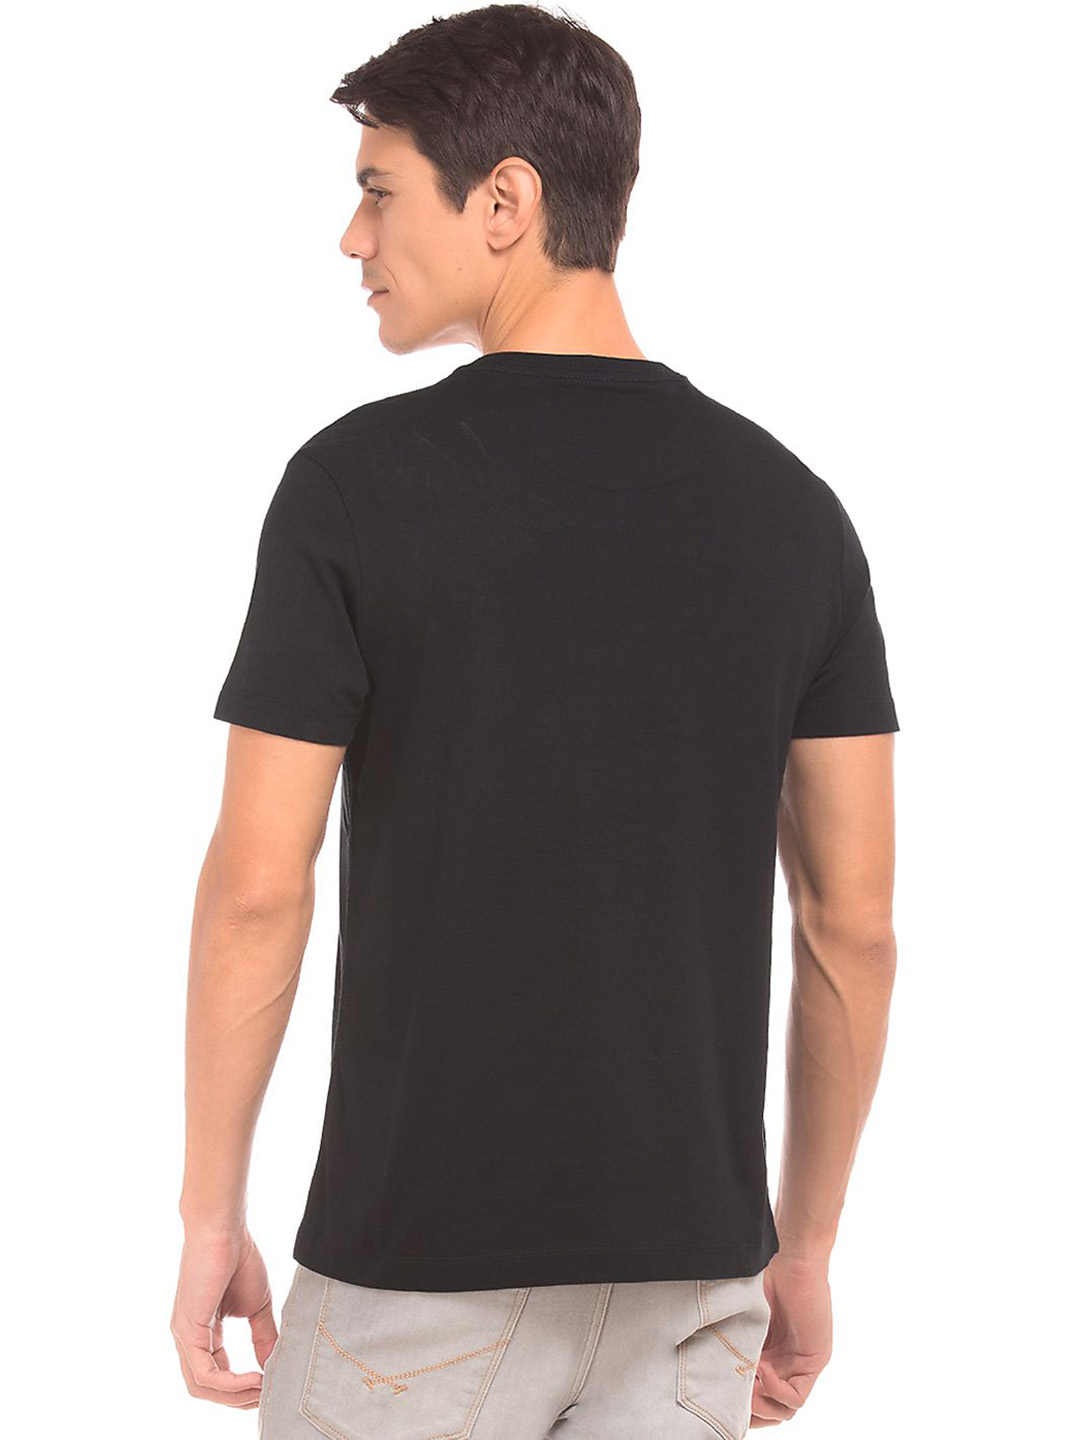 U s polo black color plain v neck t shirt g3 mts5812 for Plain colored v neck t shirts